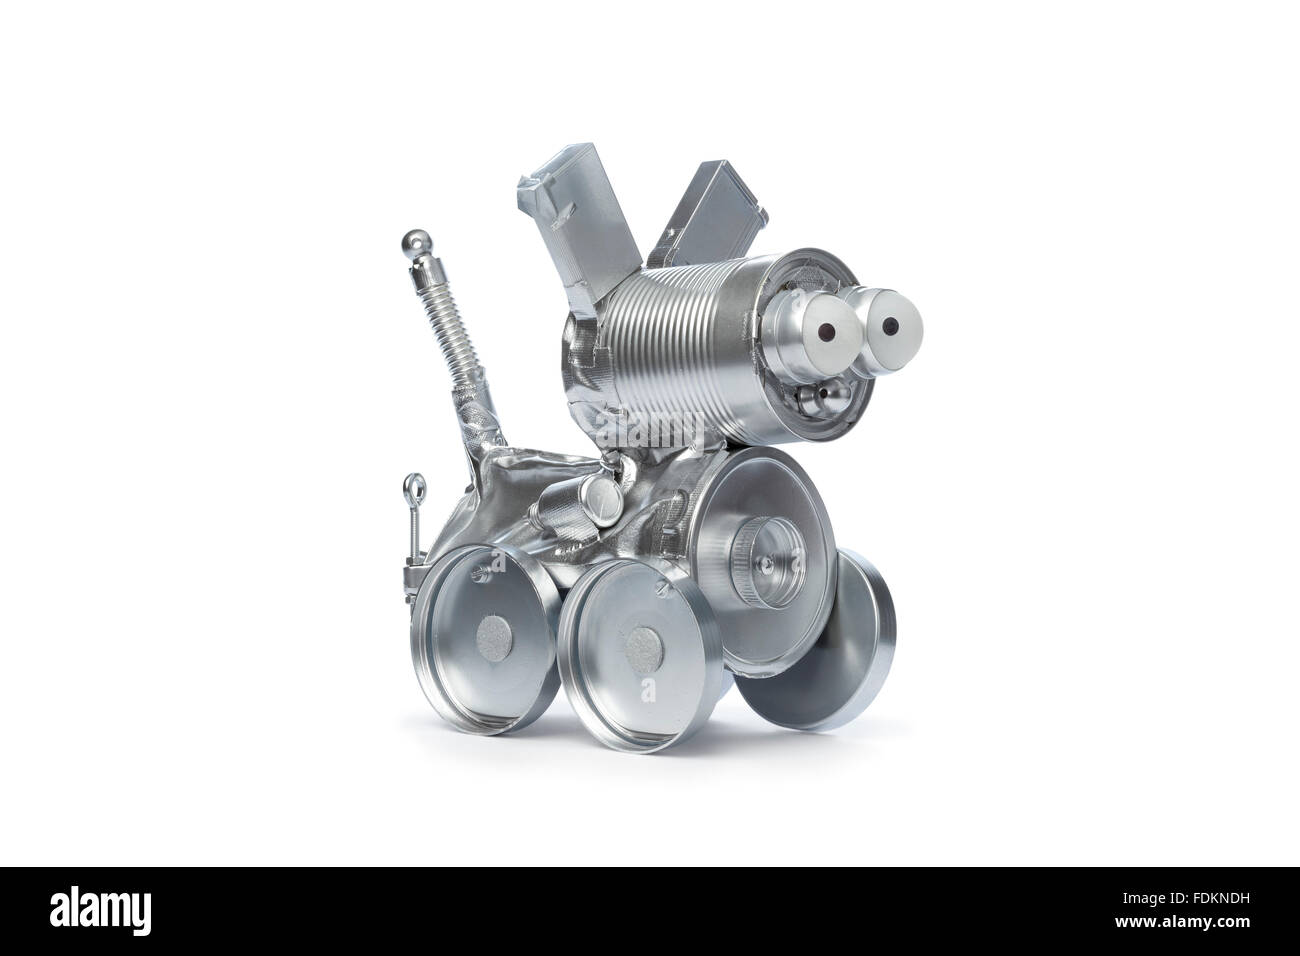 Tin robot dog on white background - Stock Image